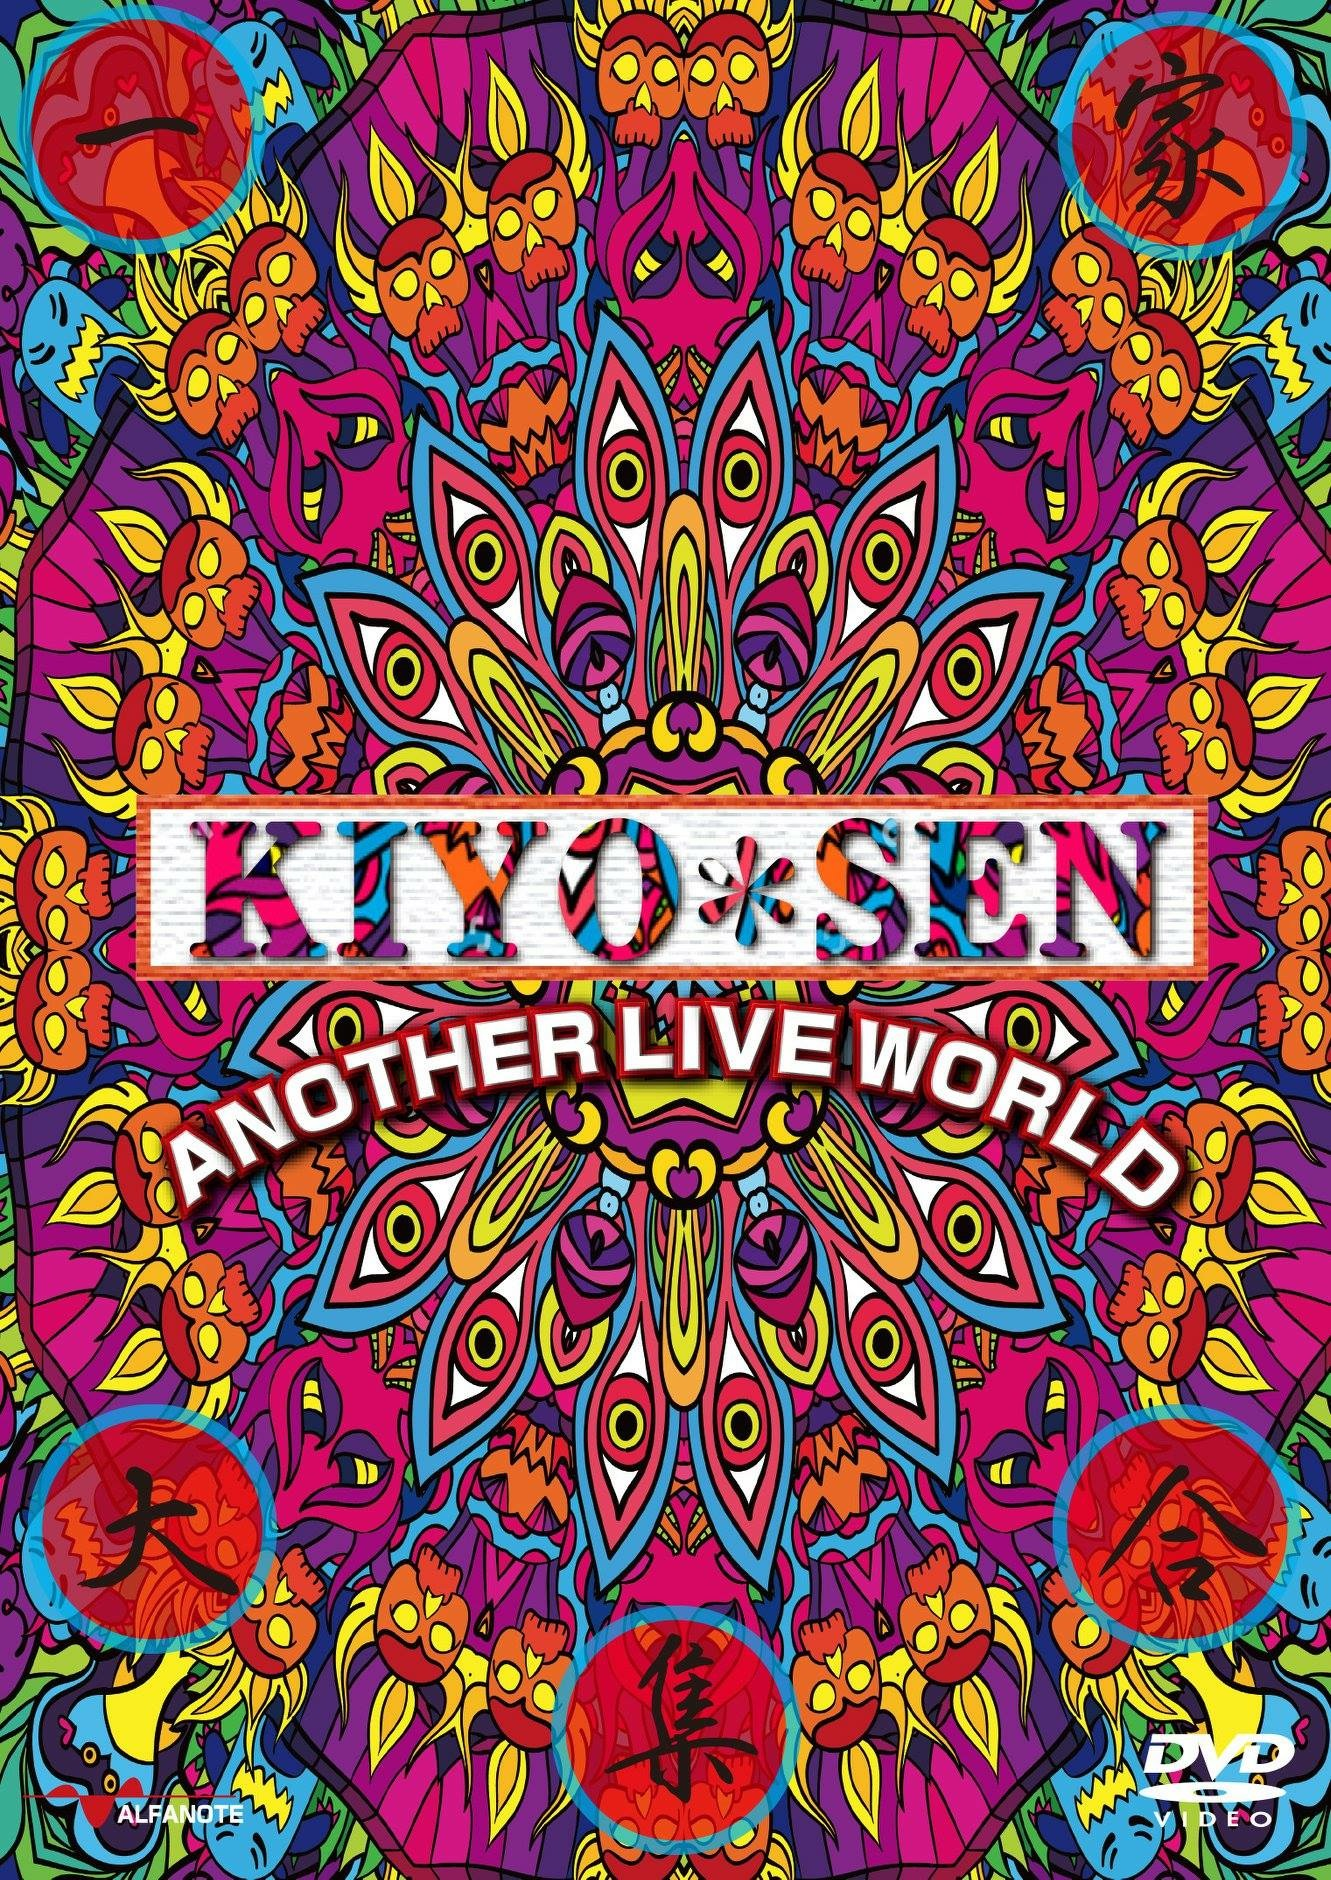 タイトル:「KIYO*SEN ANOTHER LIVE WORLD」